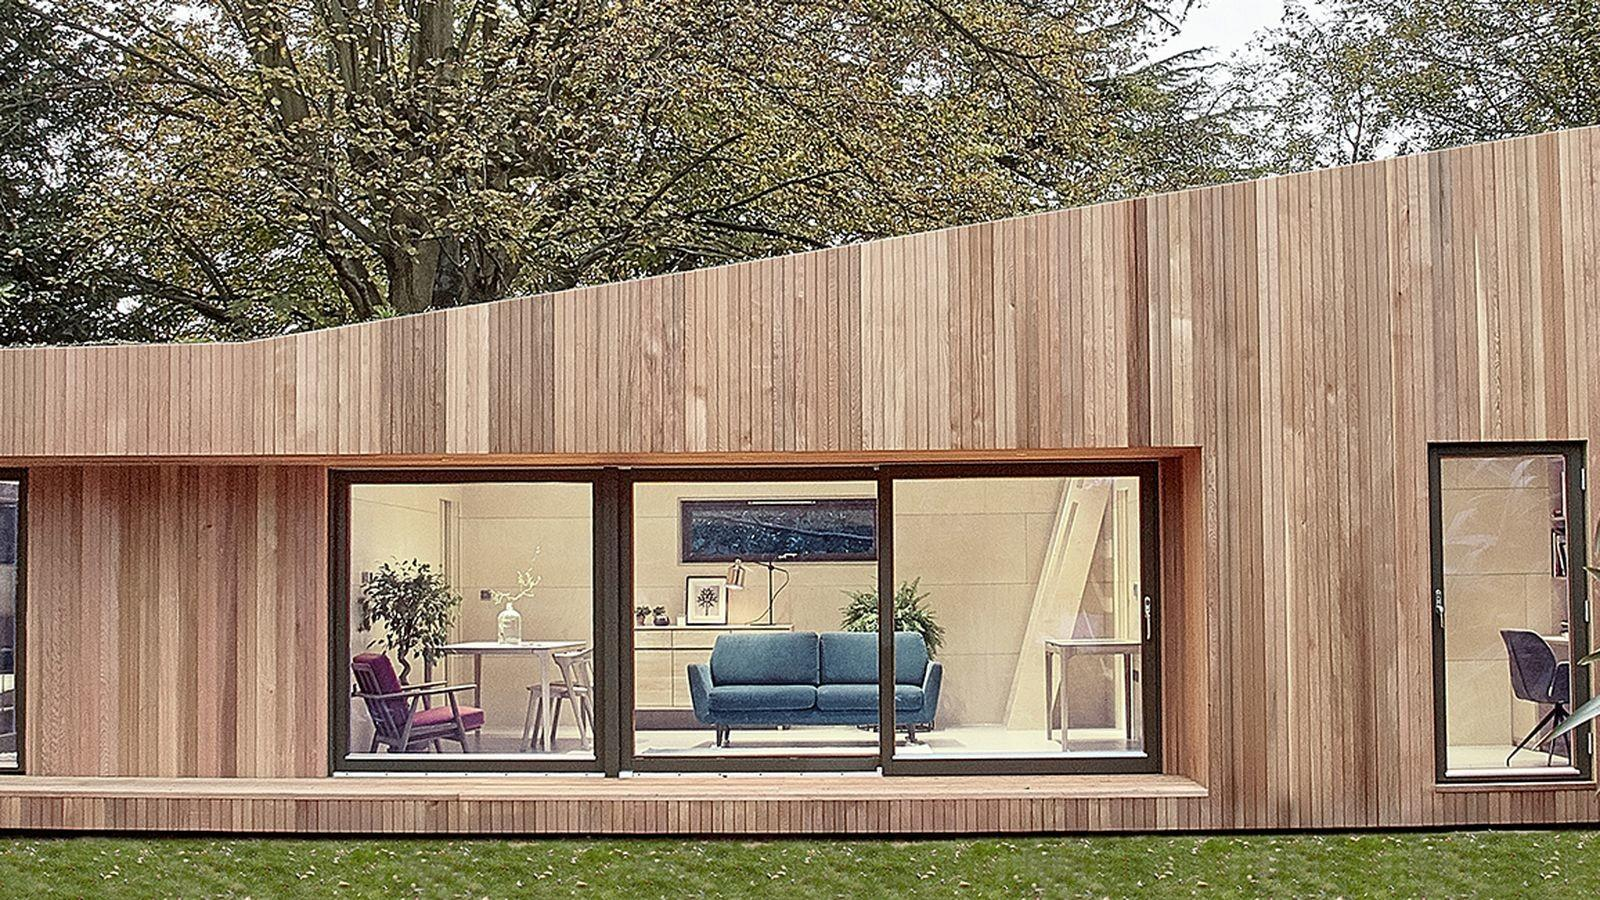 These Sustainable Prefab Homes Meant Last Curbed